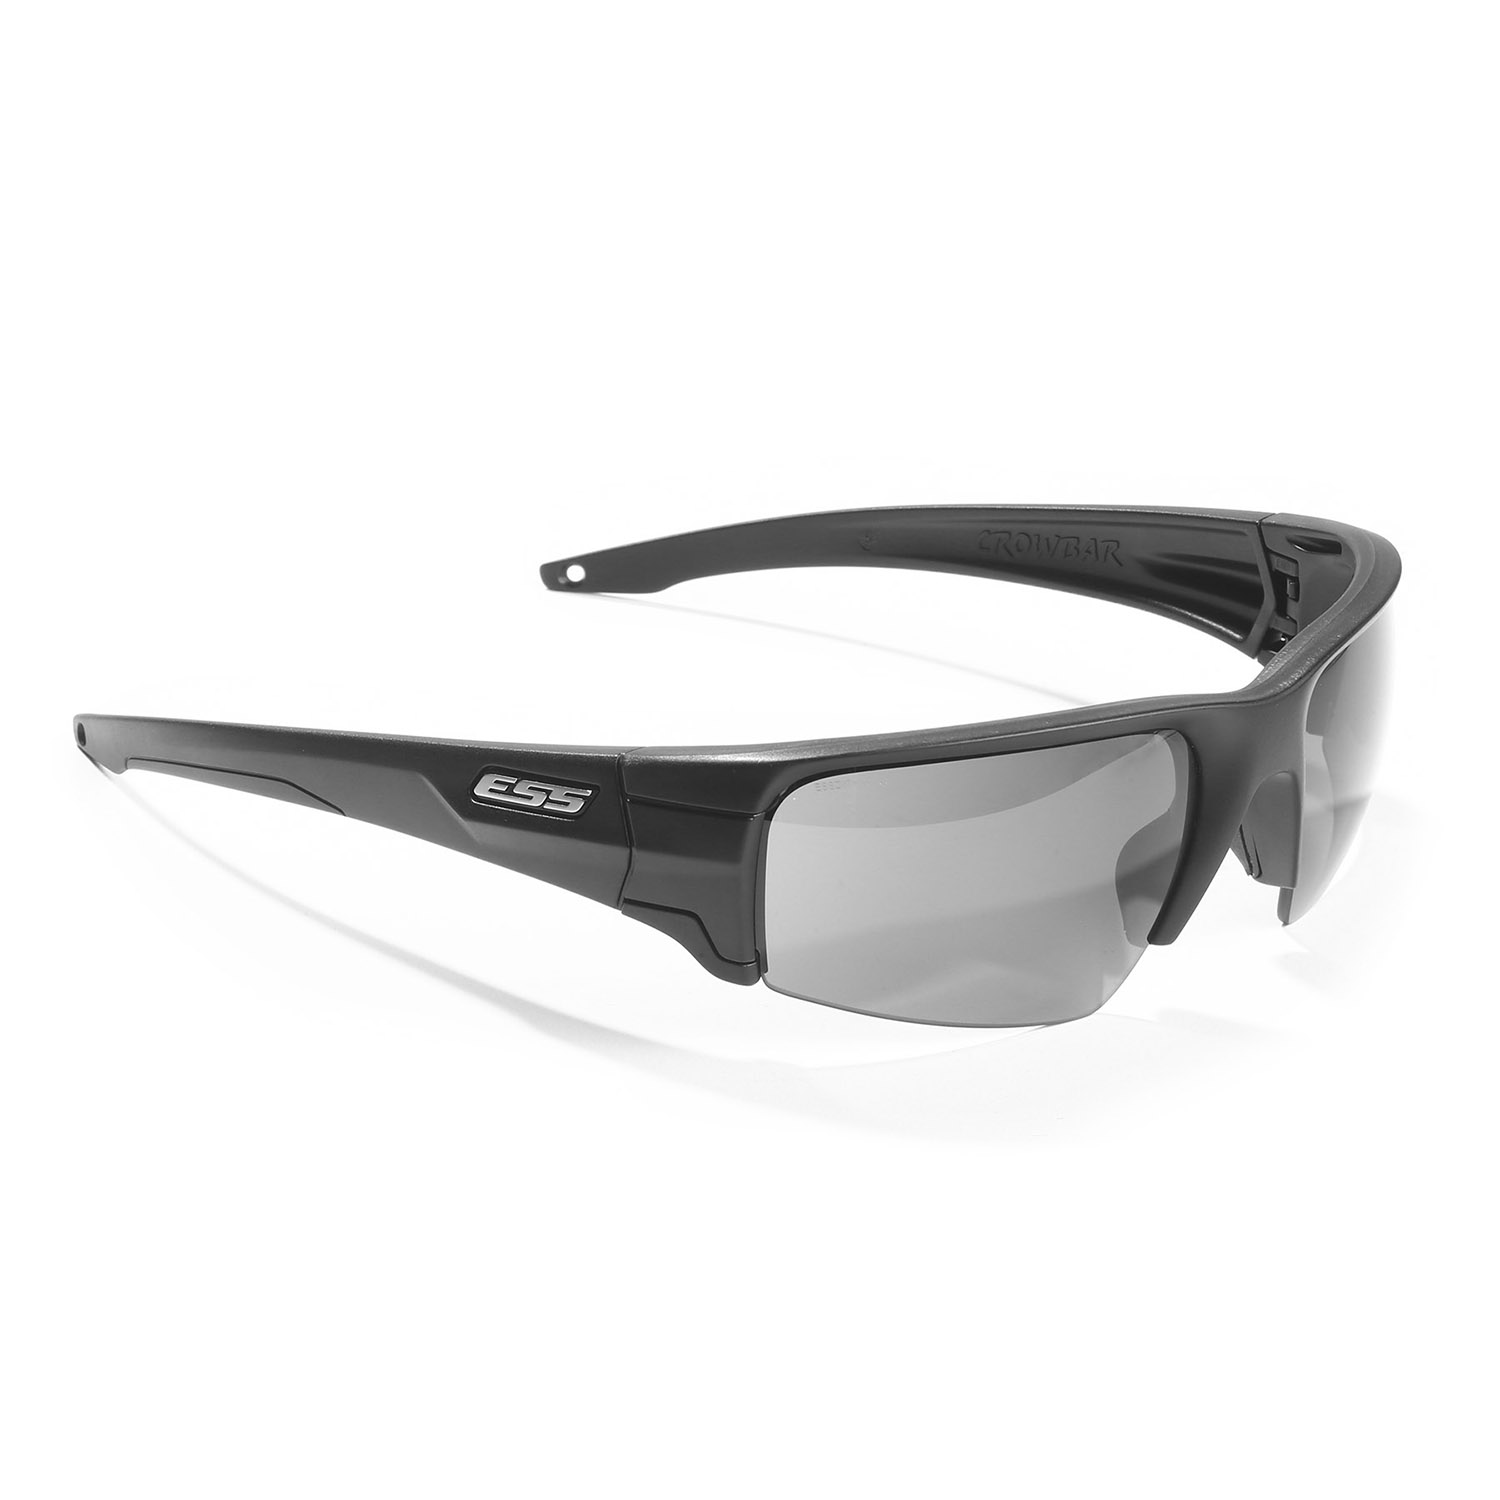 ESS Crowbar Sunglasses with Silver Logo Kit